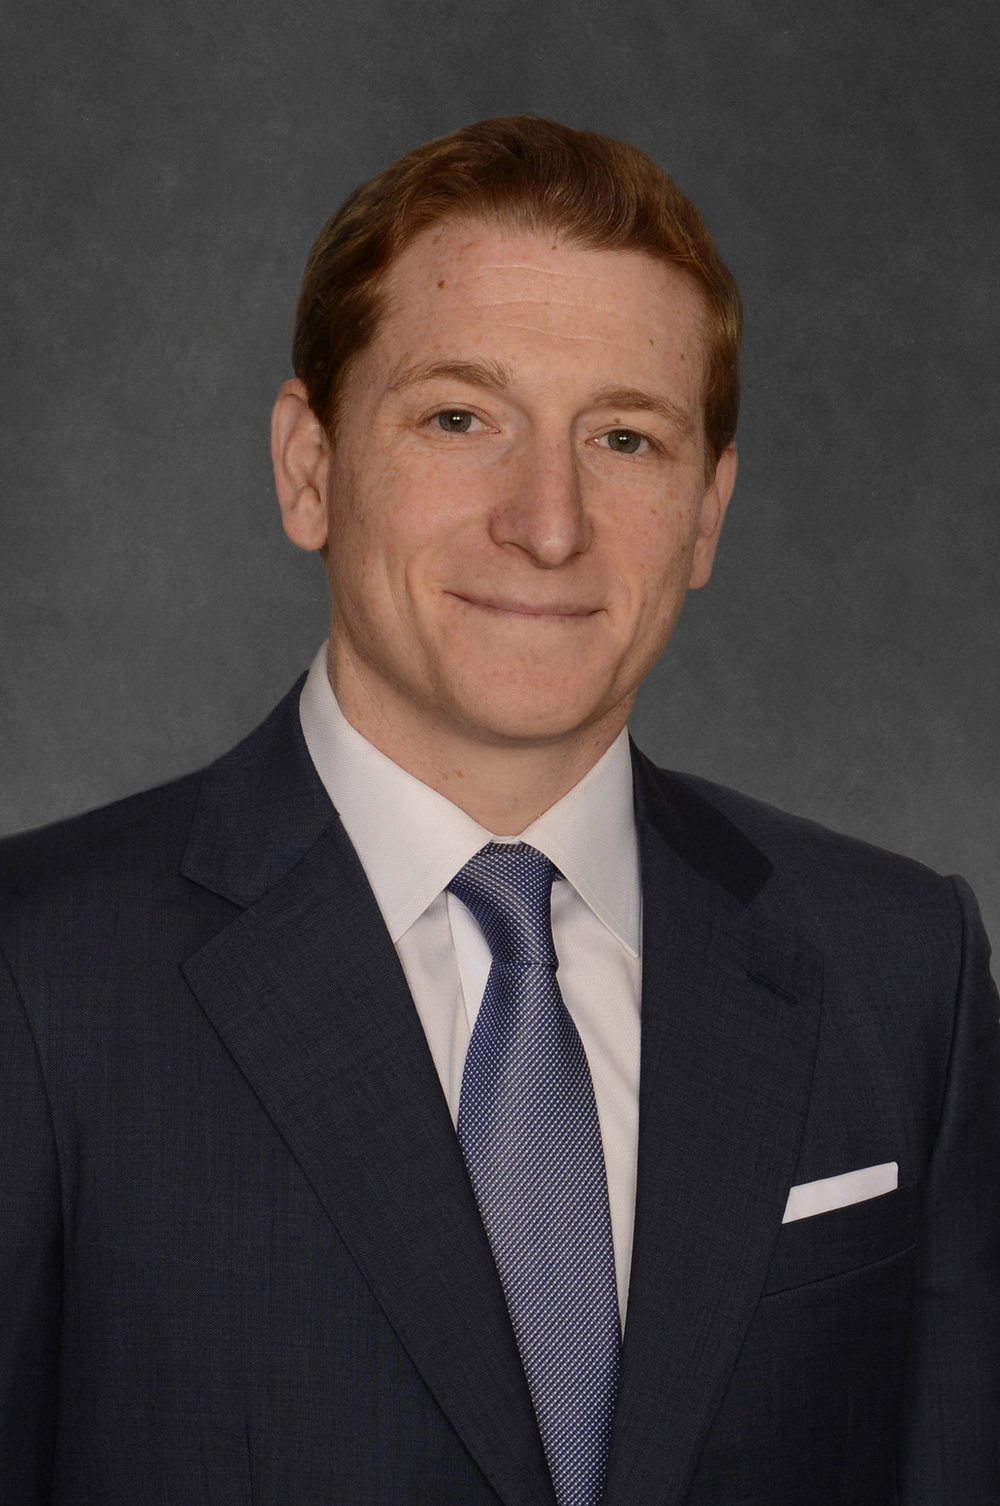 <b>JAMIE BRODSKY</b><br>Riverstone<br> Managing Director